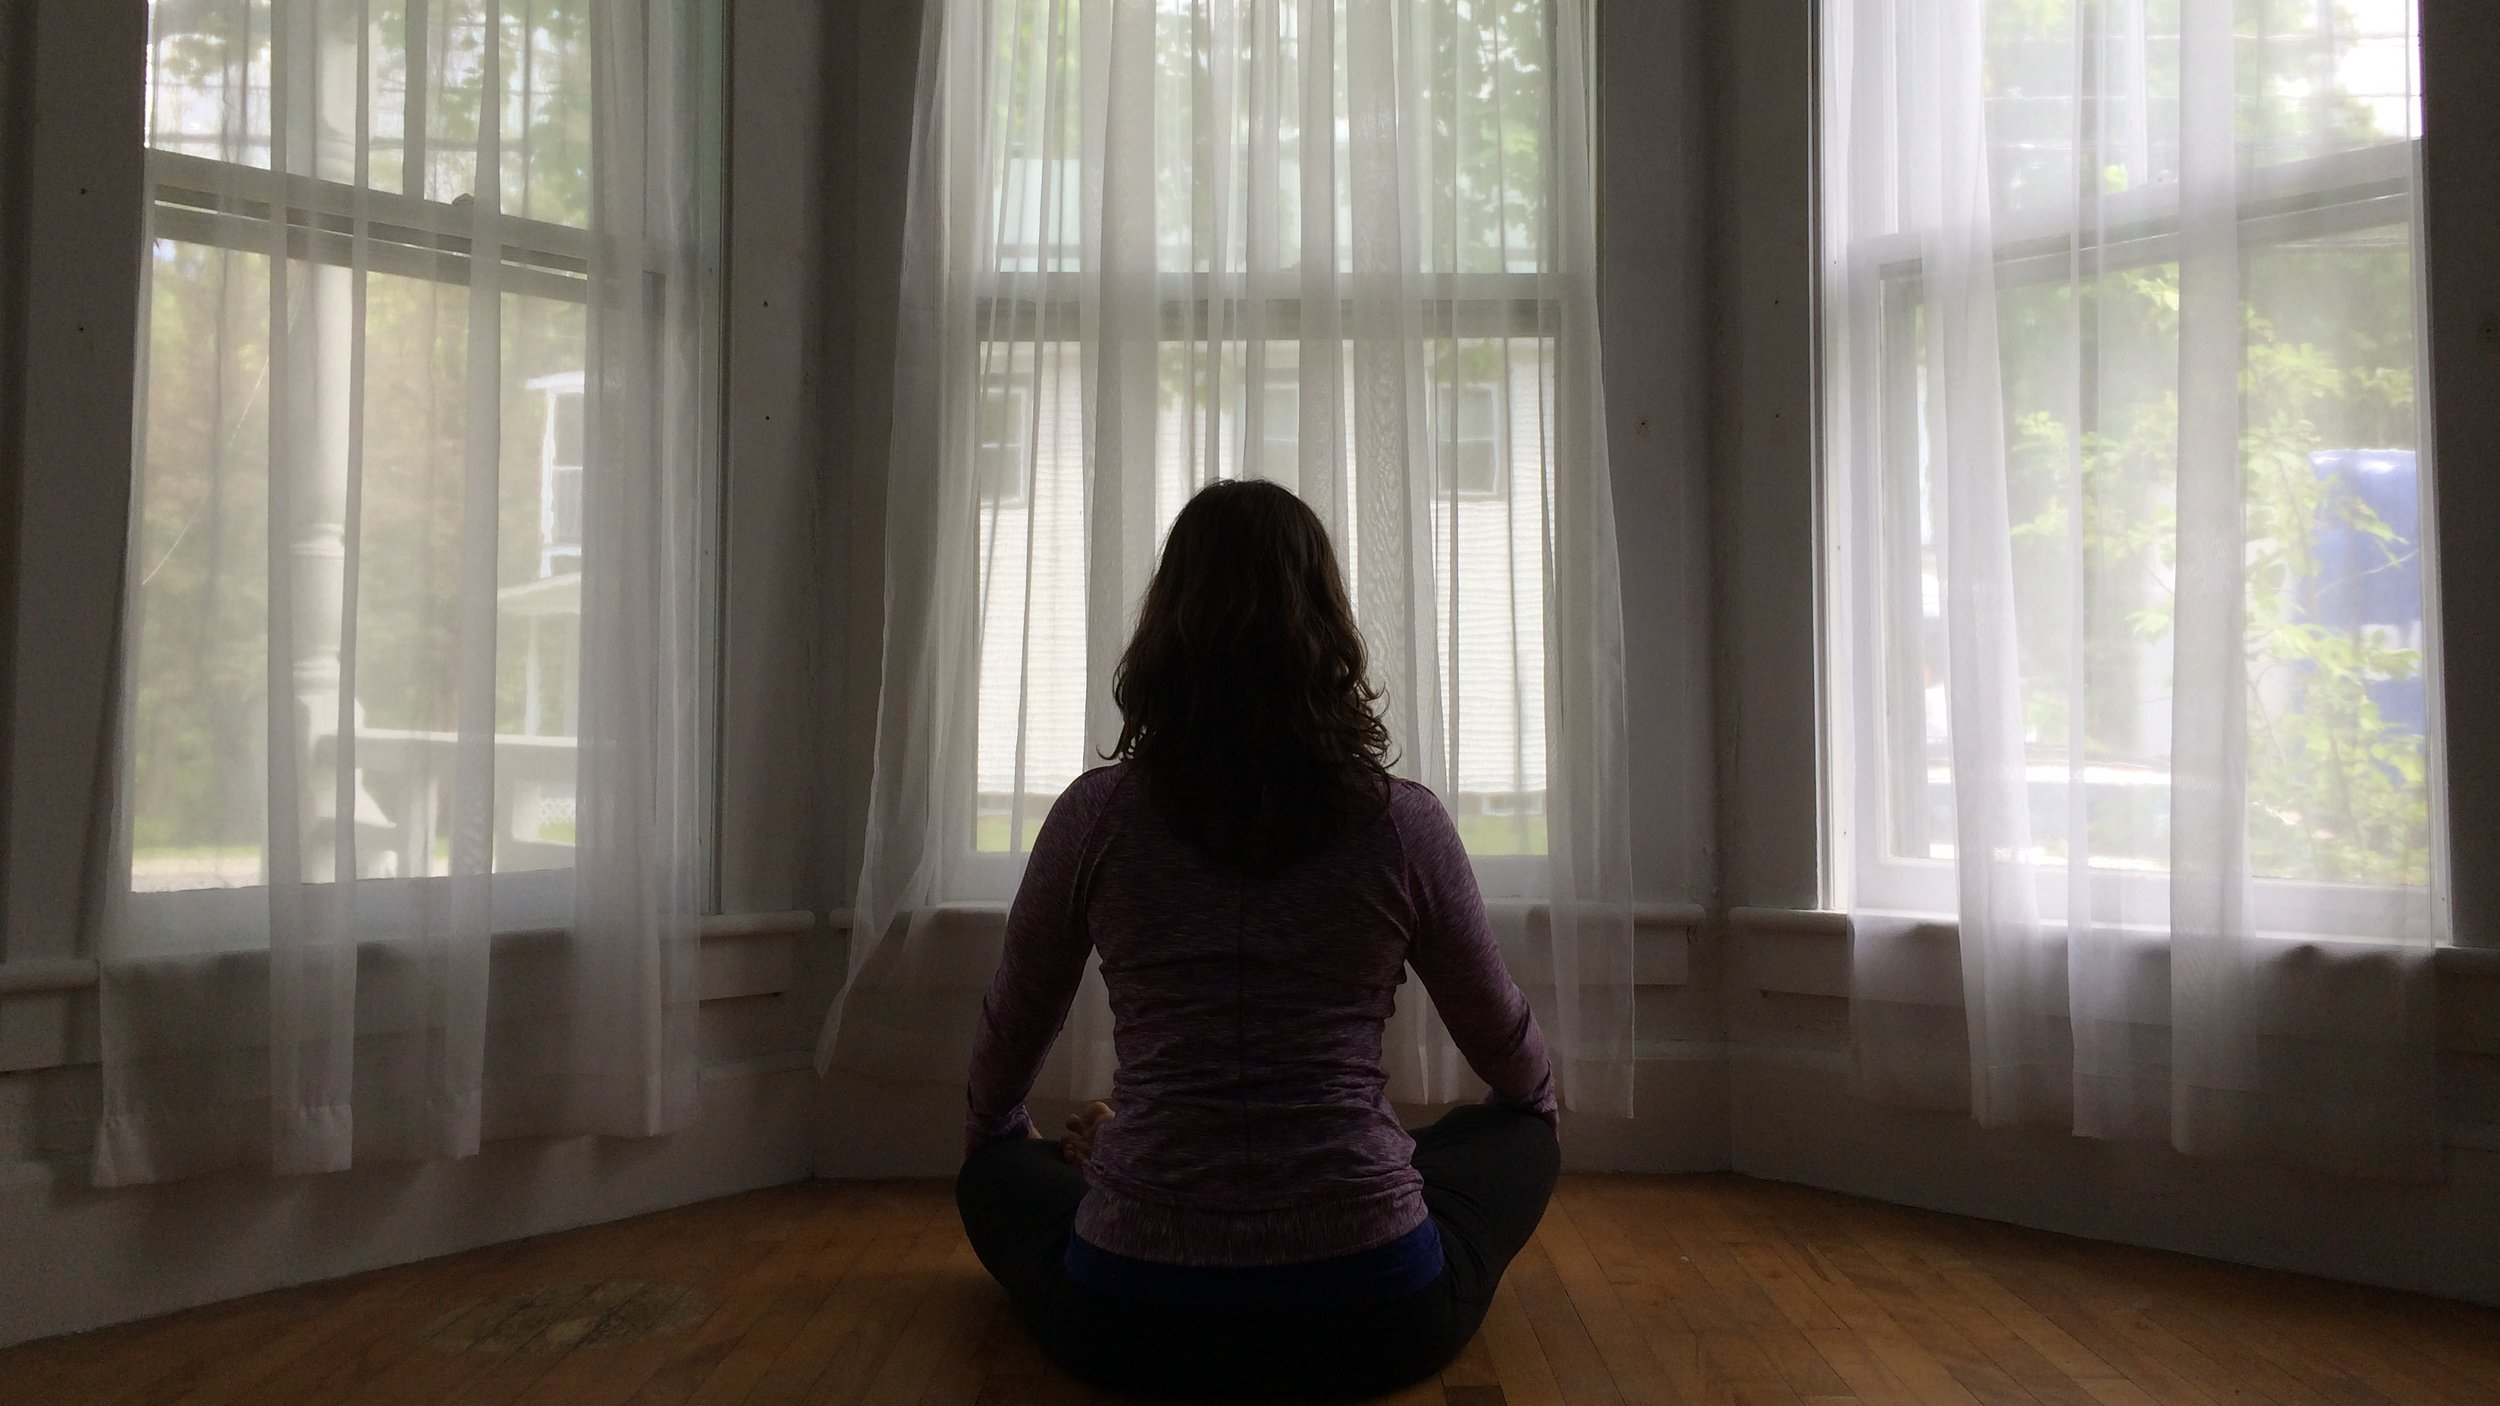 Meditation Classes by donation